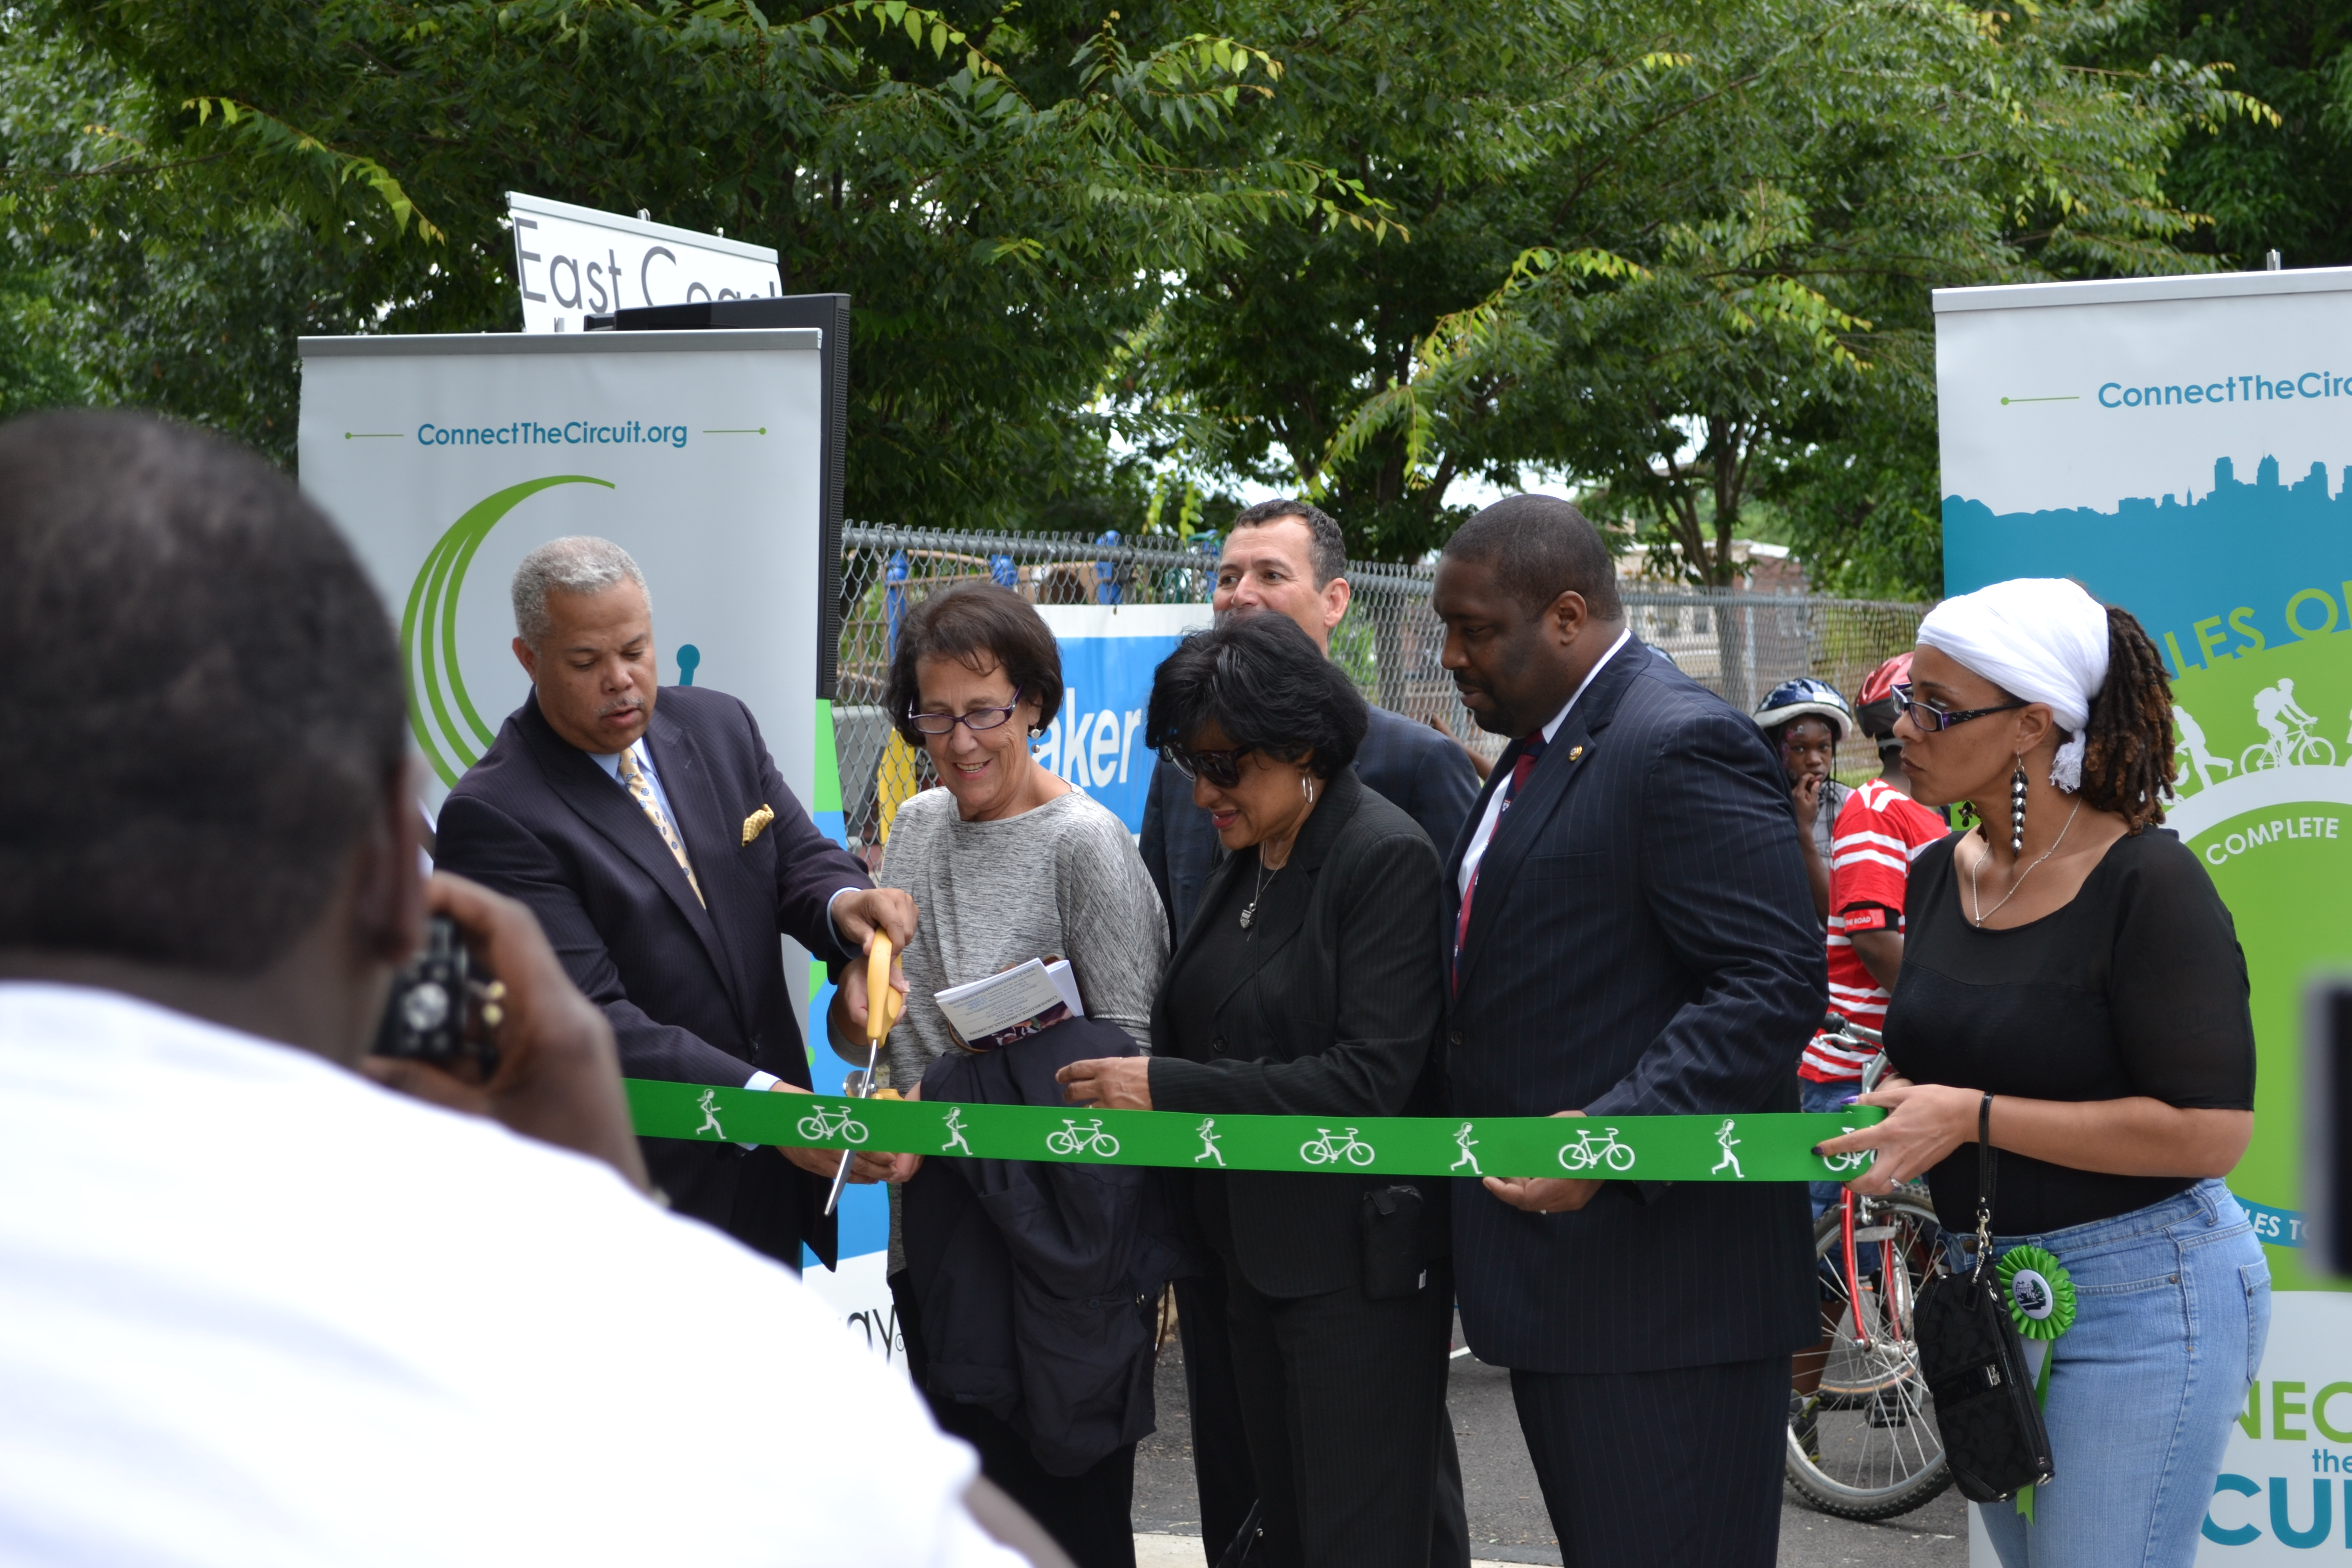 City and state officials along with project leaders cut the 58th Street Greenway ribbon